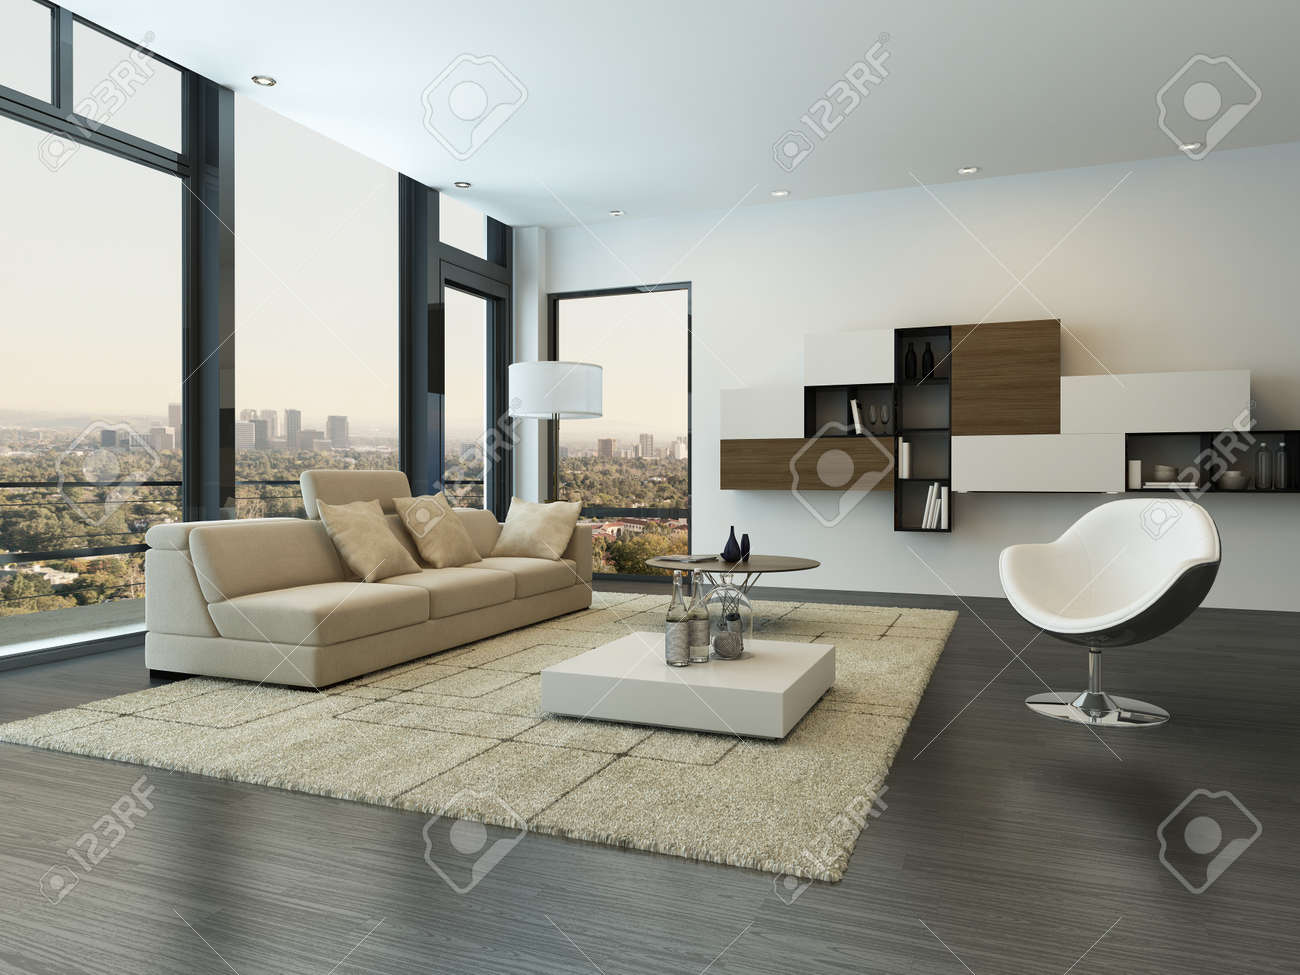 Modern Living Room Interior With Design Furniture Stock Photo ...